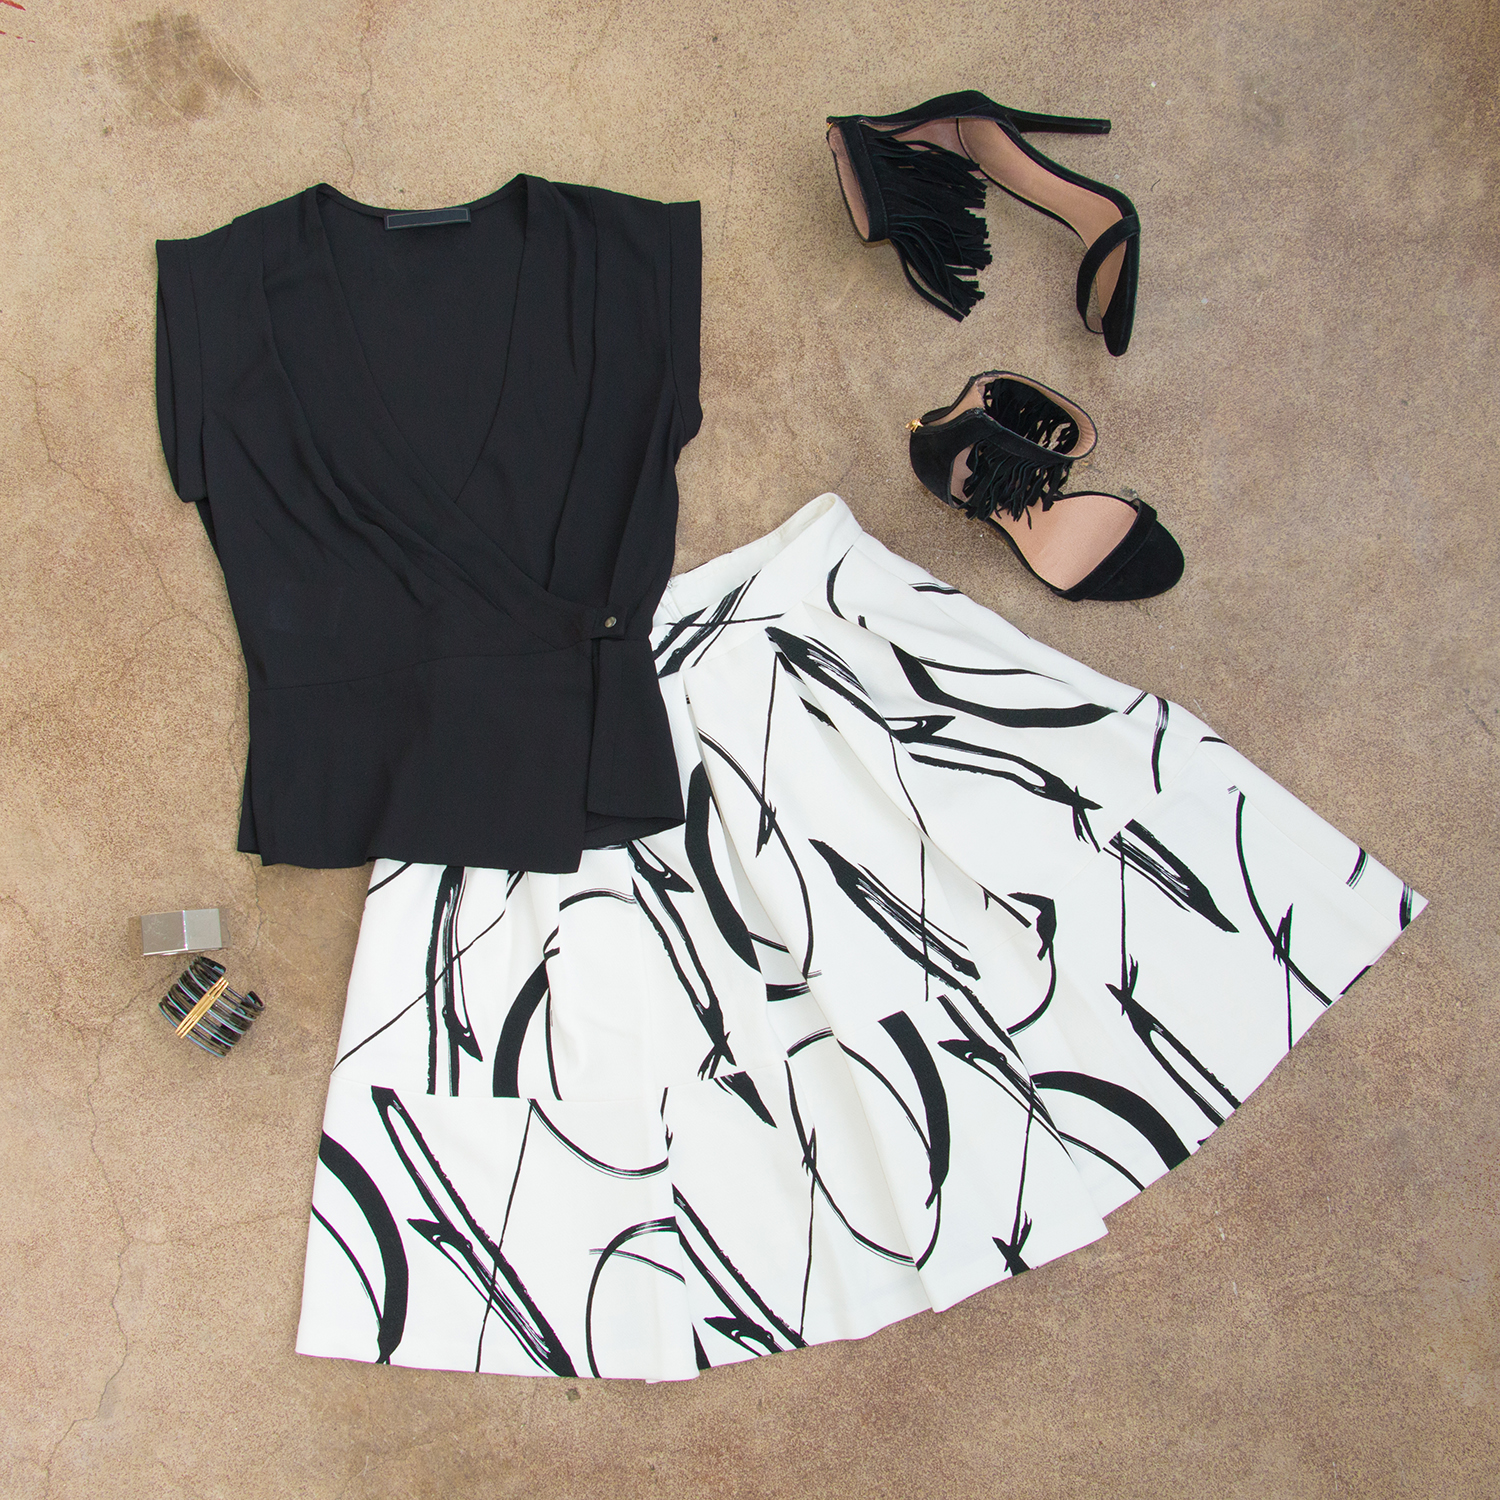 Tanger Outlets_Skirt